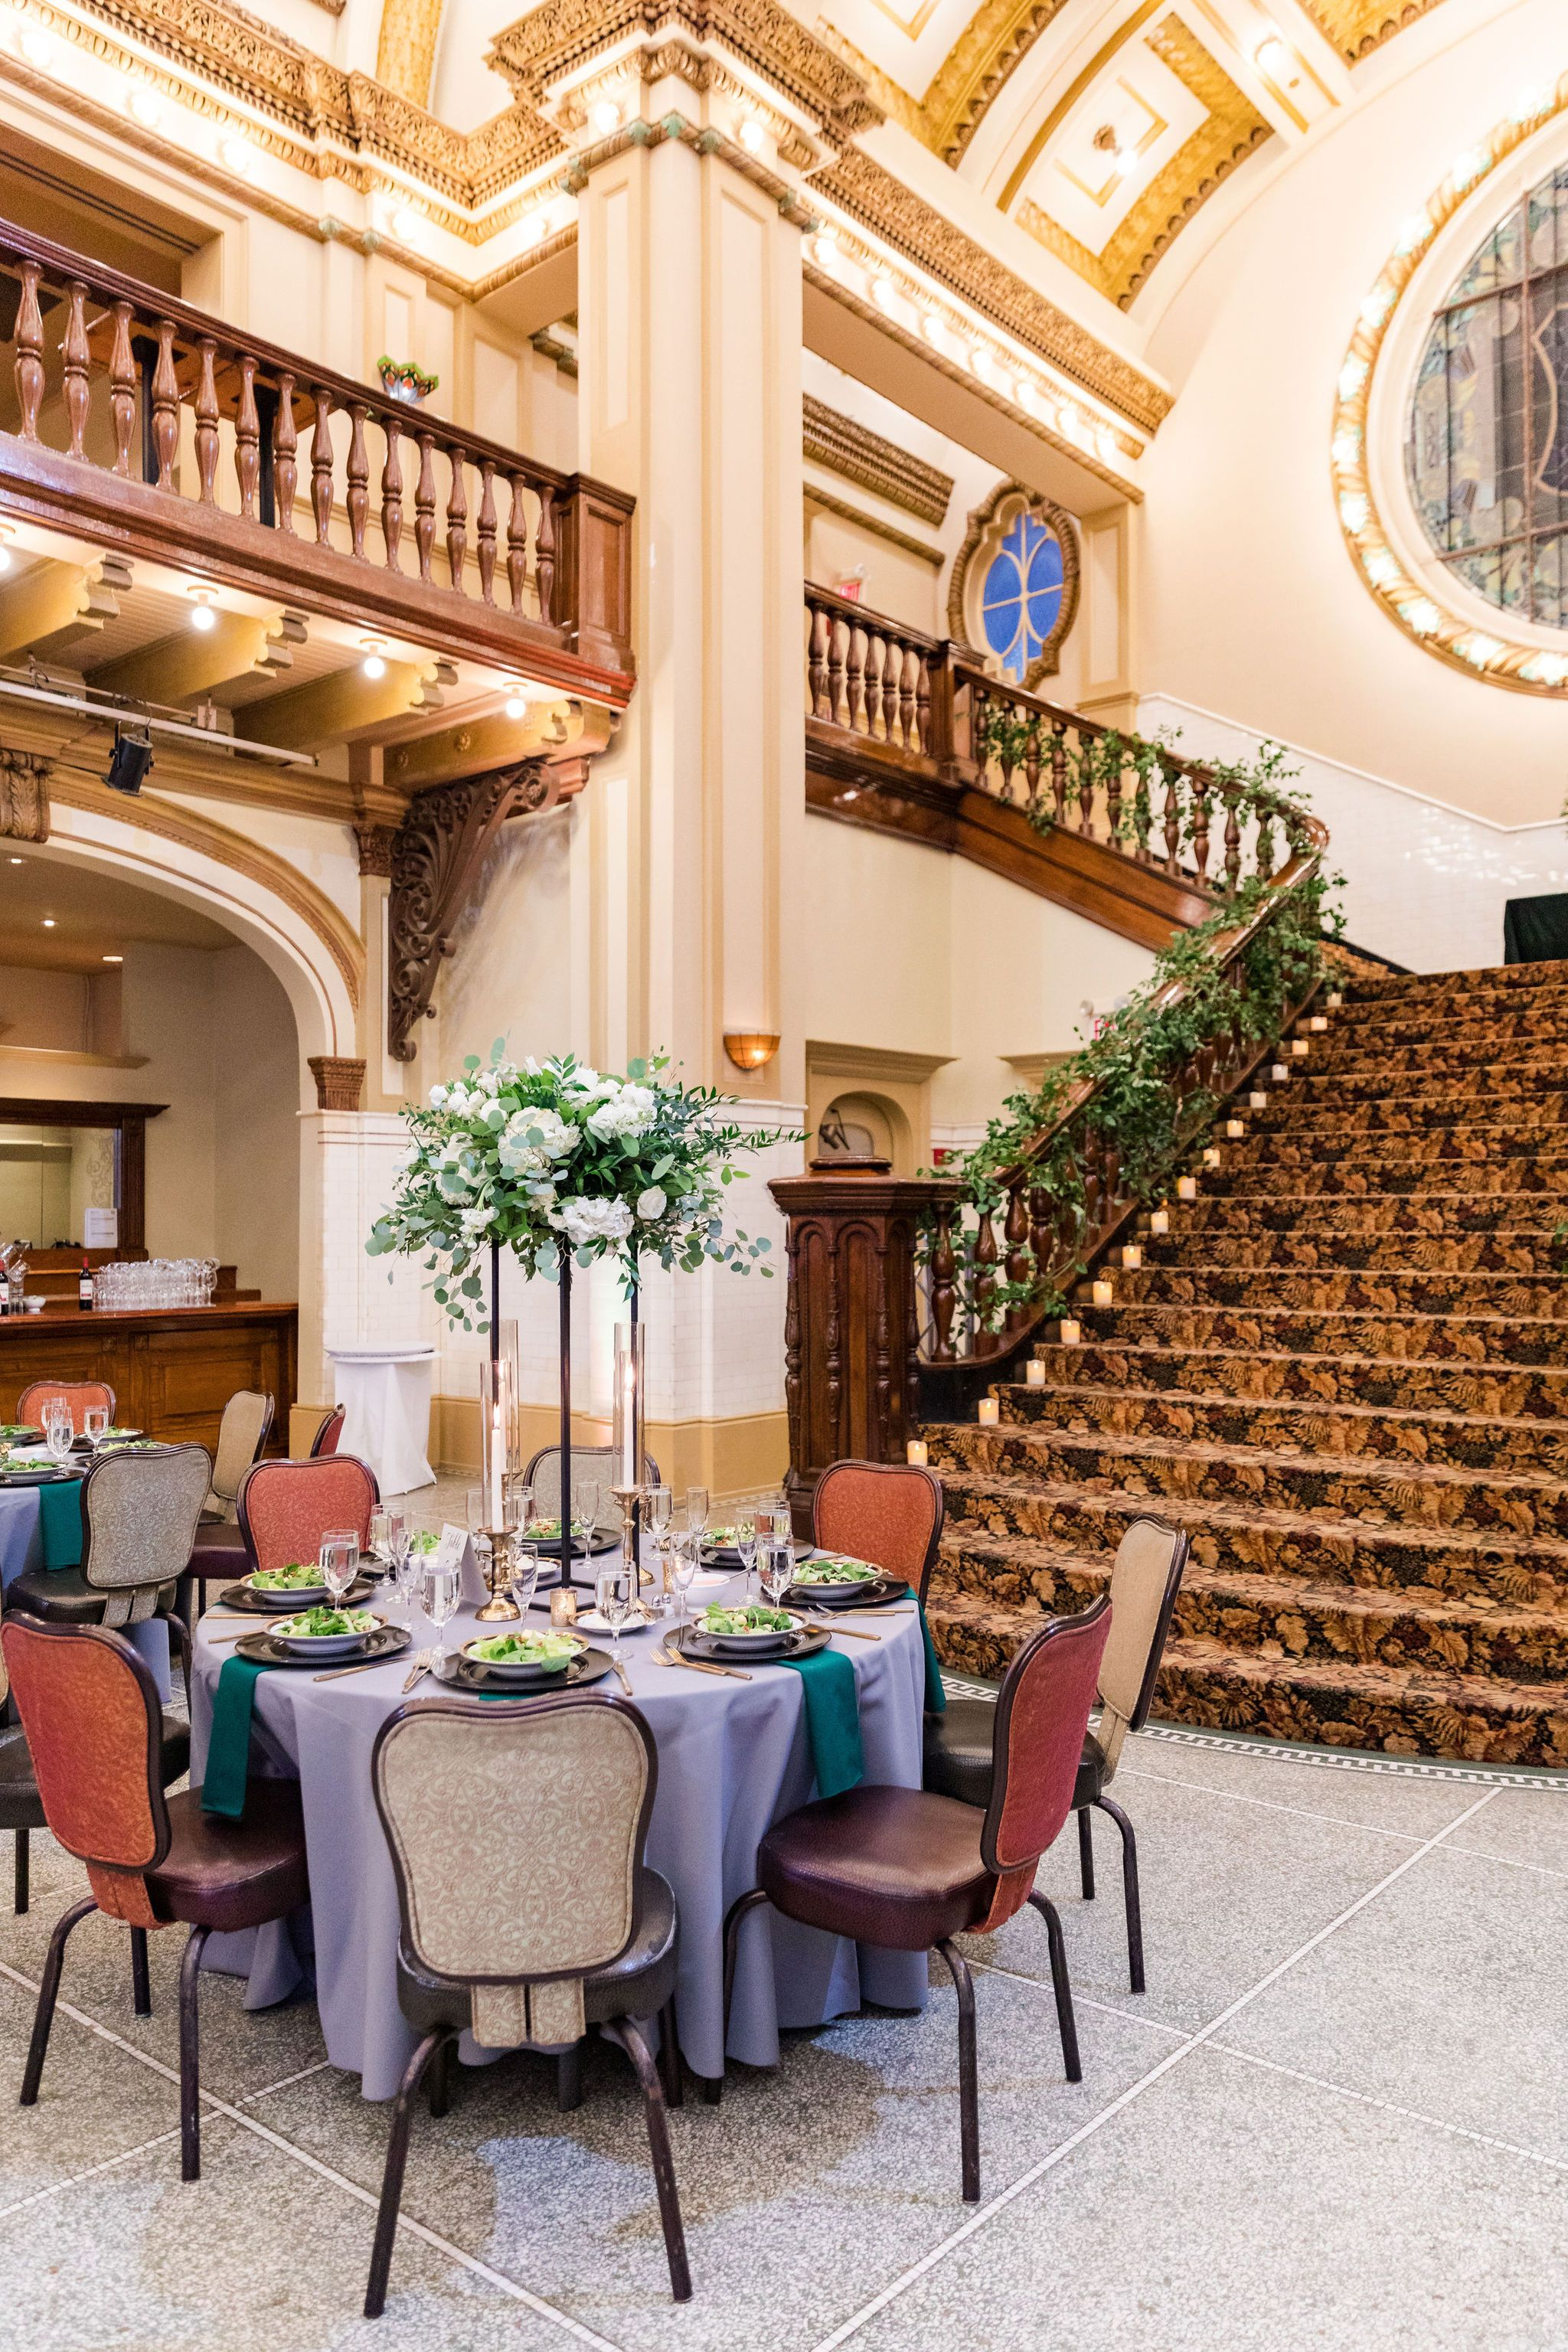 31+ Wedding packages near me 2021 information